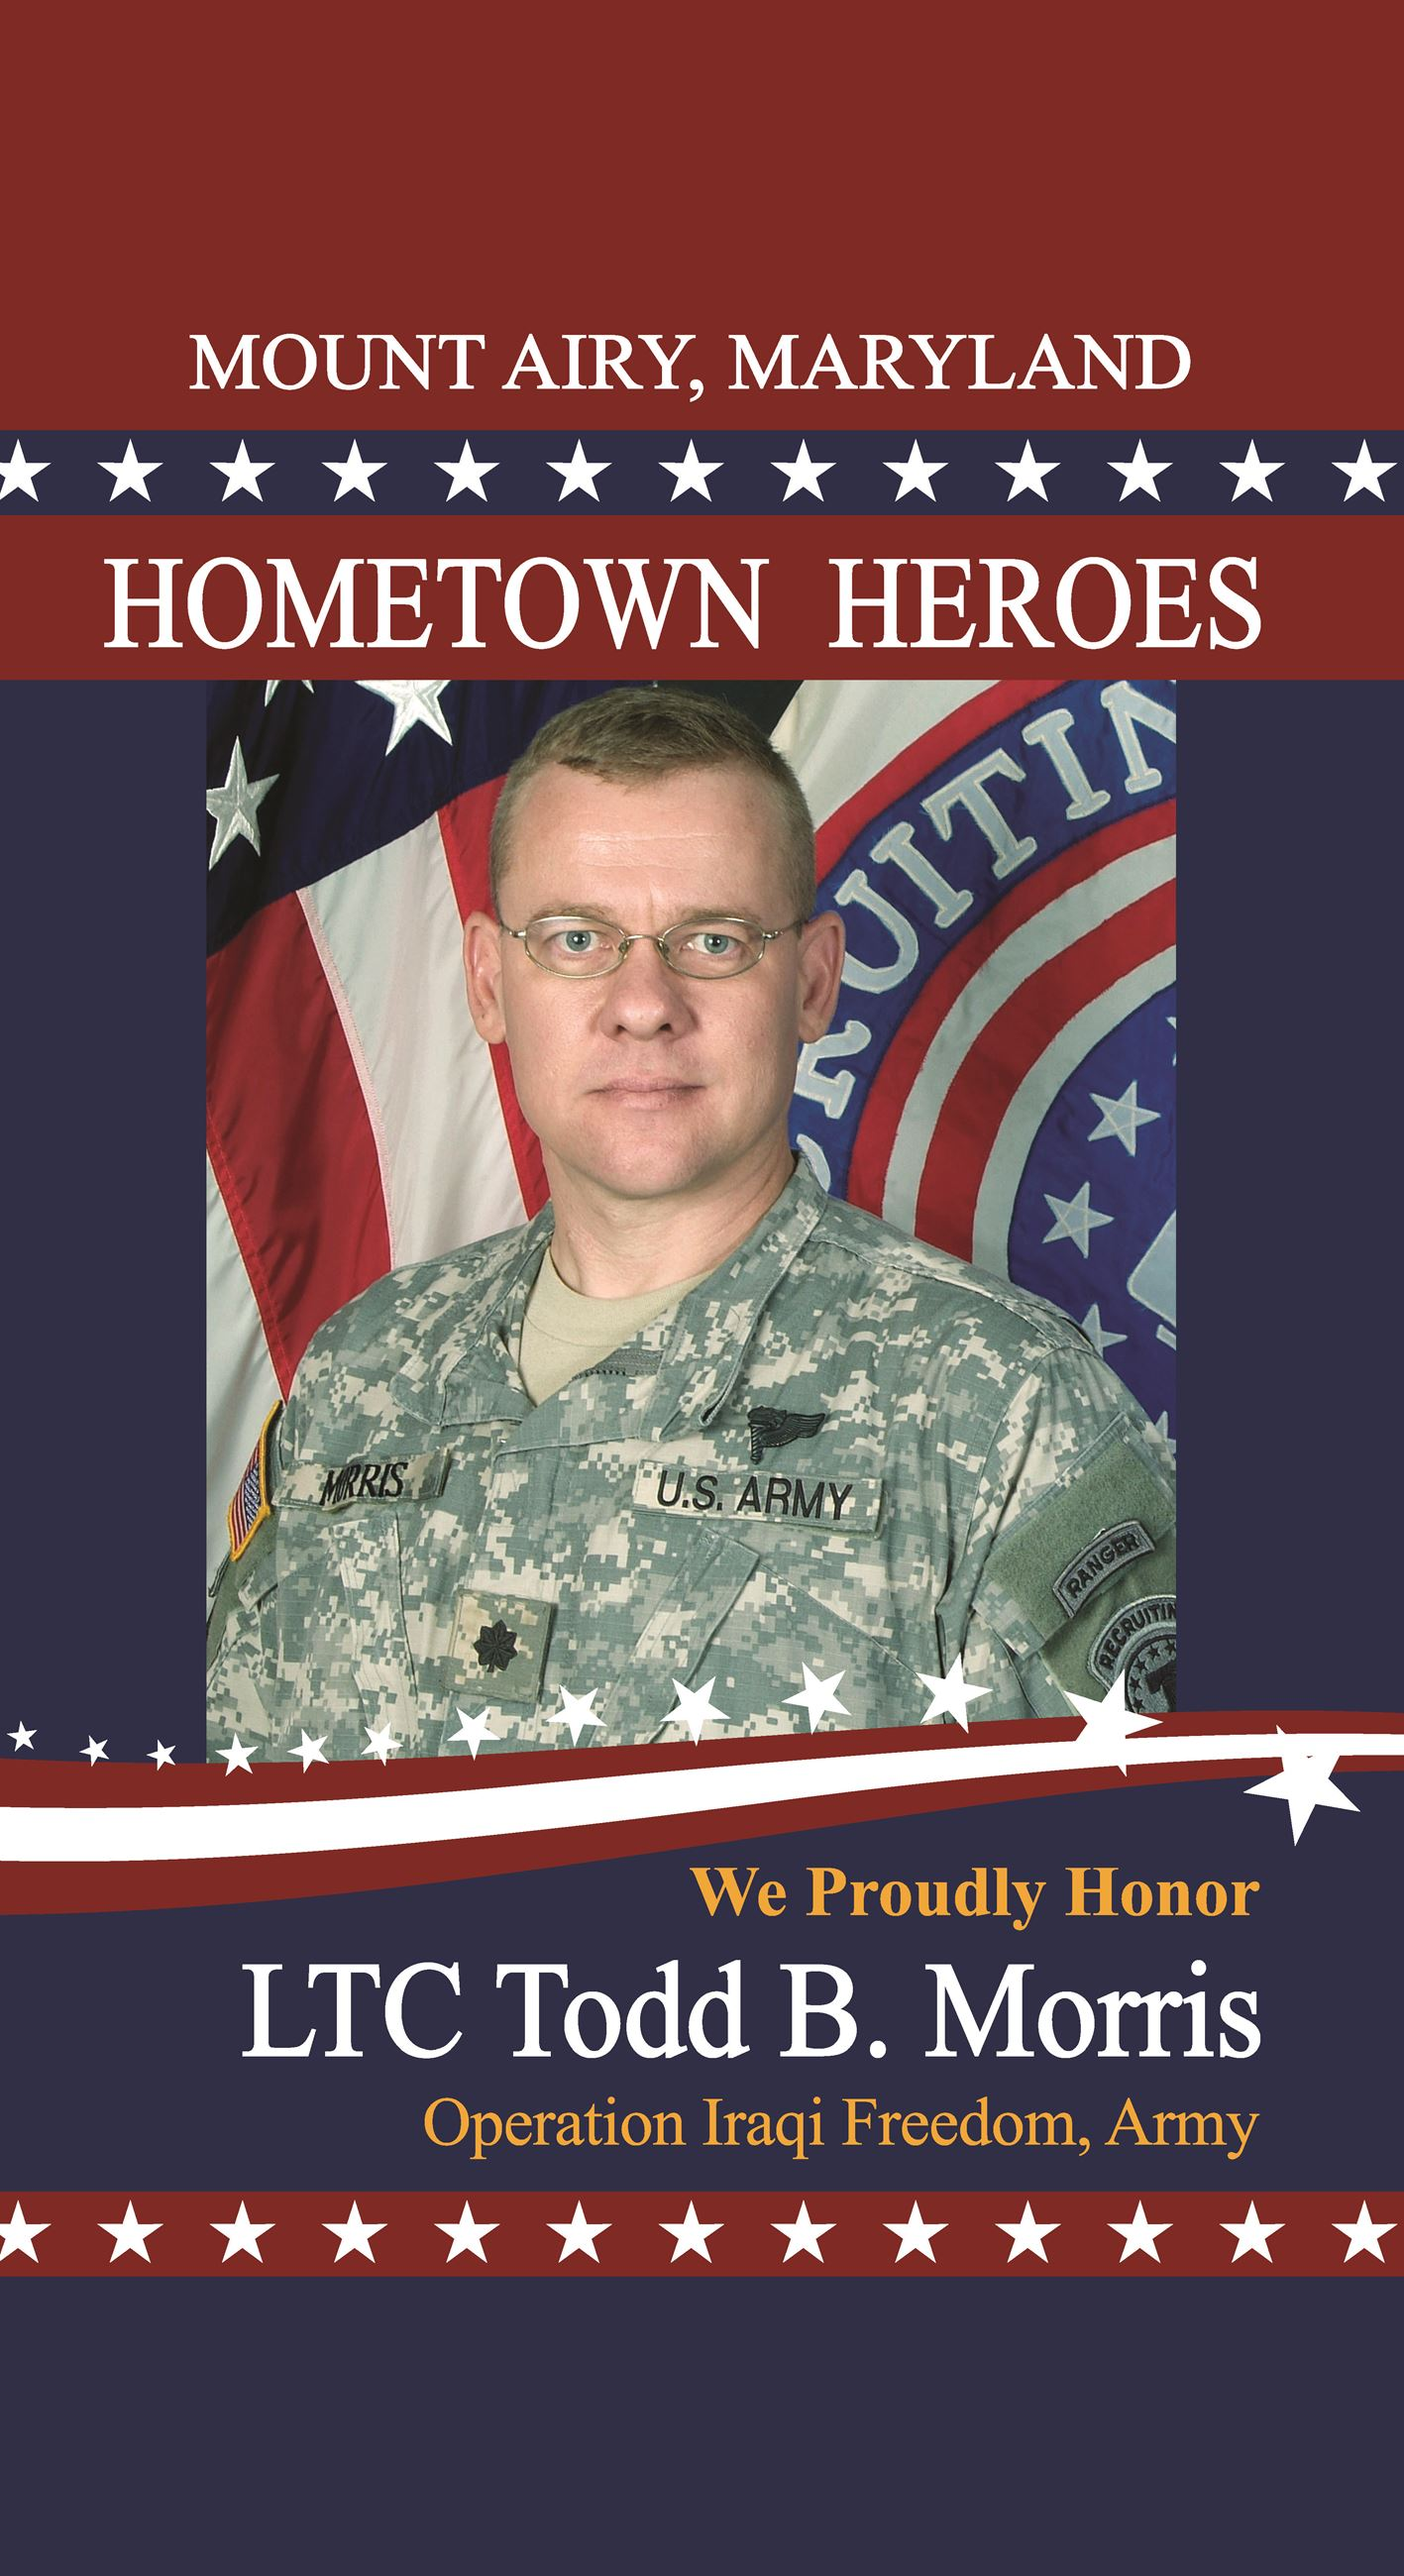 ToddBMorris_MtAiryHeroes-Flag-24x44-Proof001